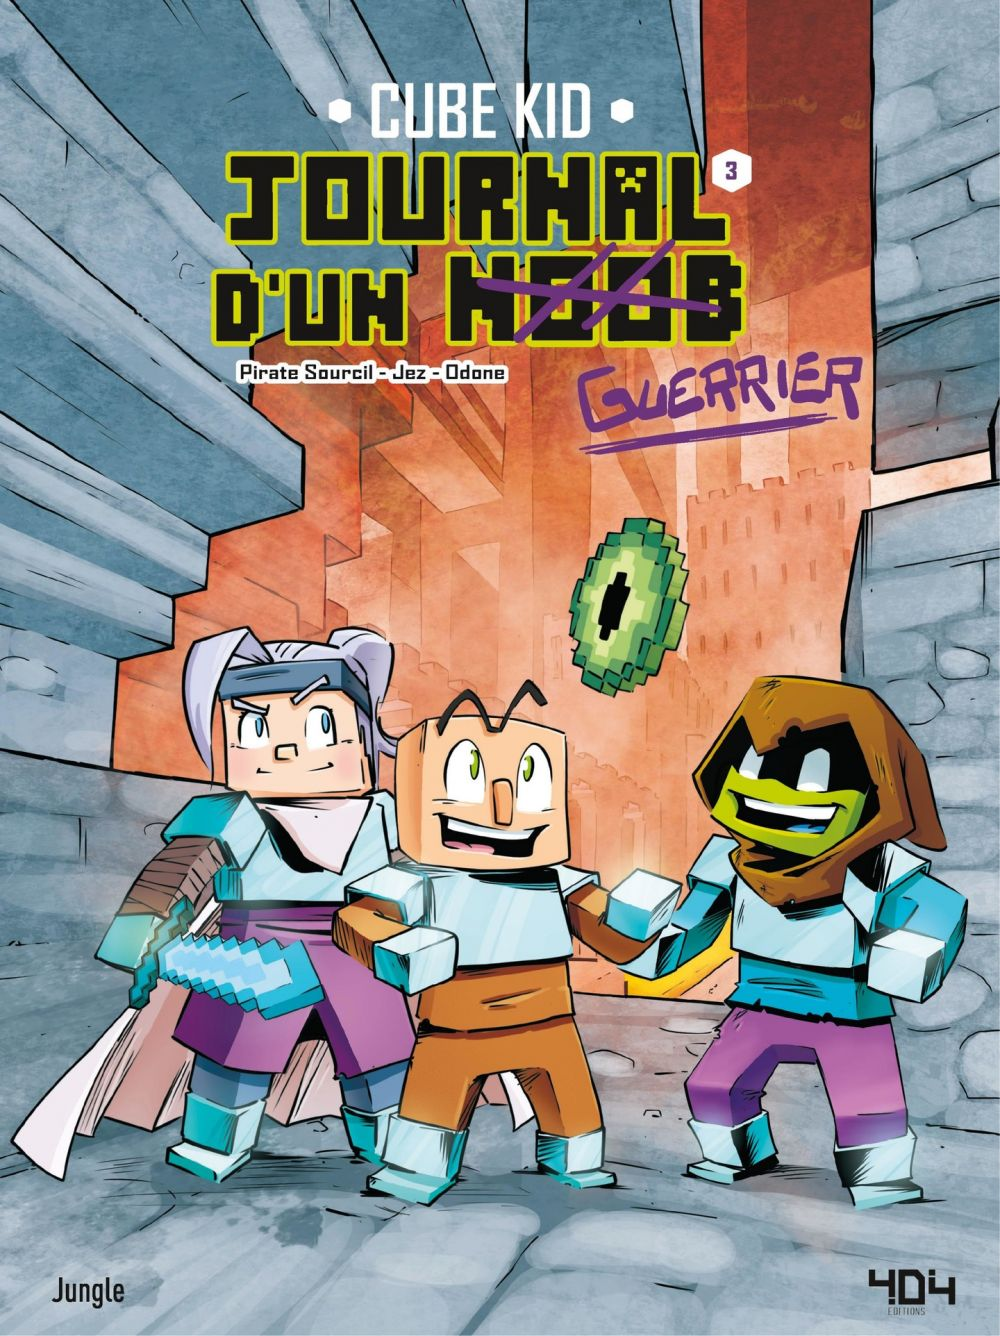 Journal d'un noob - Tome 3